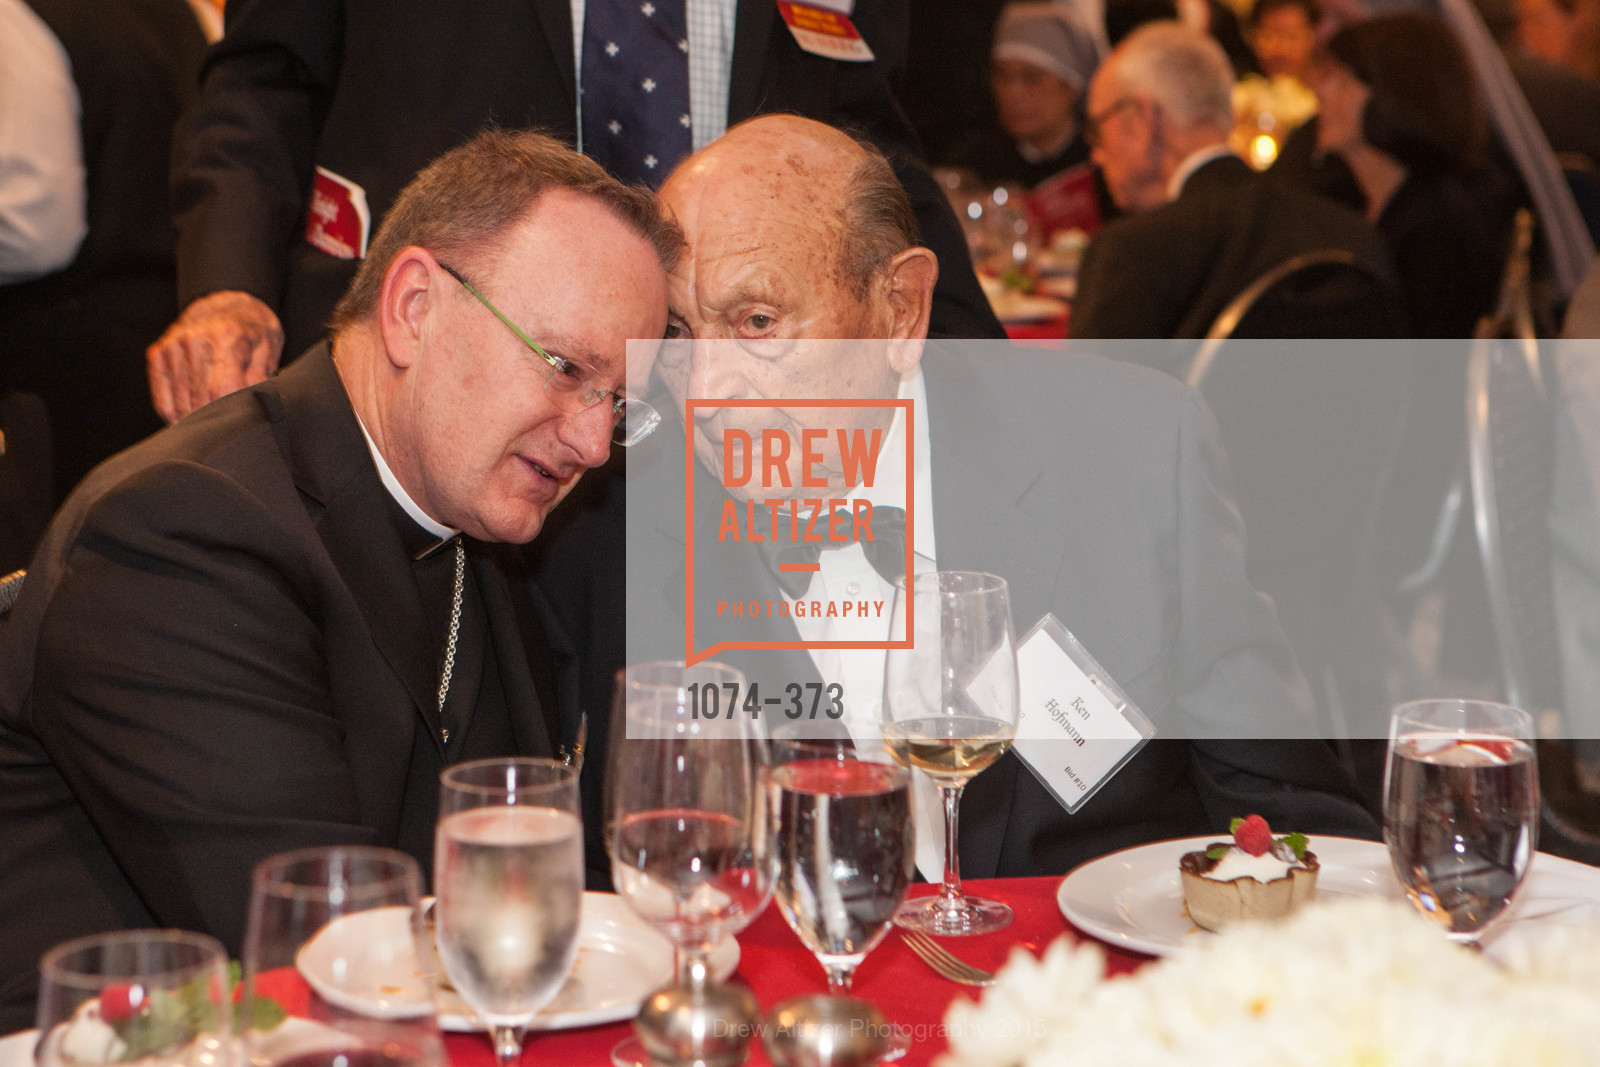 Michael Barber, Ken Hofmann, Sovereign Order of Malta Presents: A Knight for Champions, 7th Annual Silver Chalice Awards Dinner, St. Francis Yacht Club. 99 Yacht Rd, October 13th, 2015,Drew Altizer, Drew Altizer Photography, full-service agency, private events, San Francisco photographer, photographer california